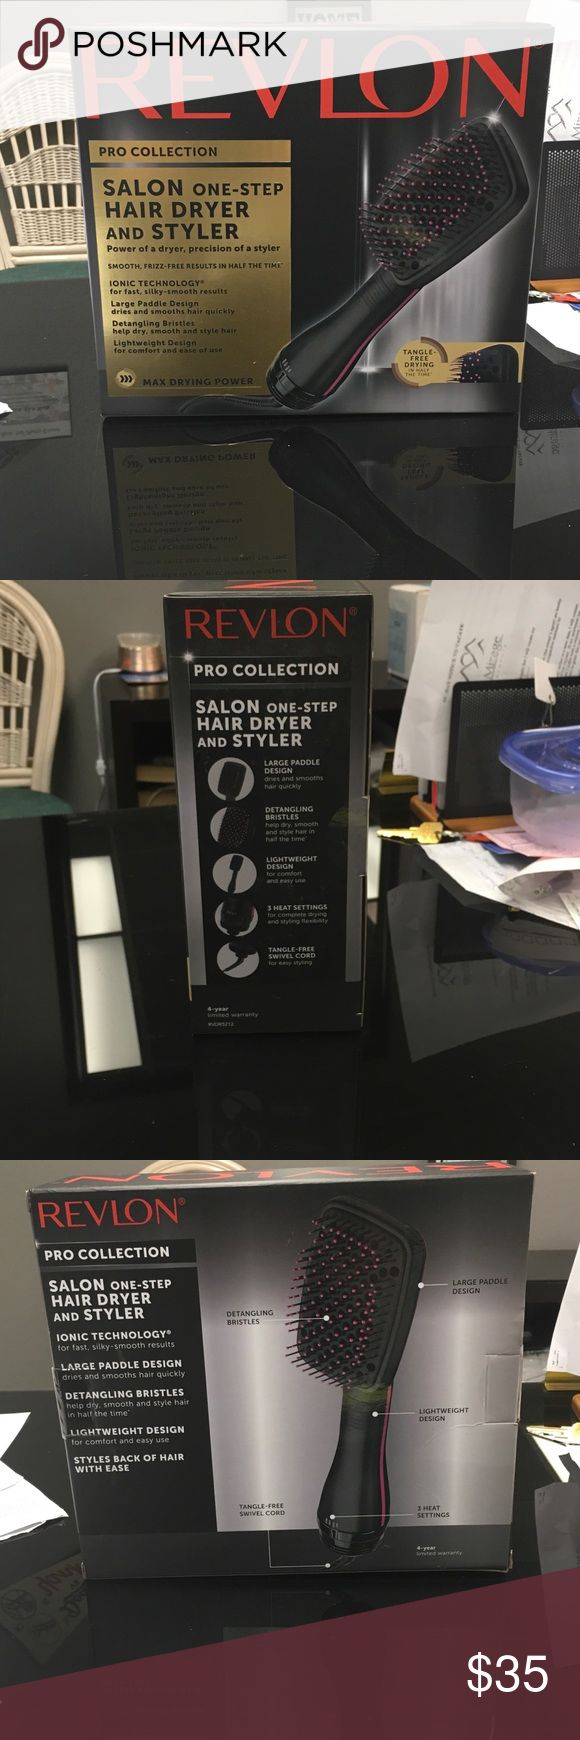 Revlon Pro Collection Salon Hair Dryer and Styler Brand new! Never came out of the box! Revlon Salon One-Step Hair Dryer and Styler!  Ionic Technology, Large Paddle Design. Detangling Bristles, Lightweight, Multiple Heat Settings with a Professional Swivel cord Revlon Other